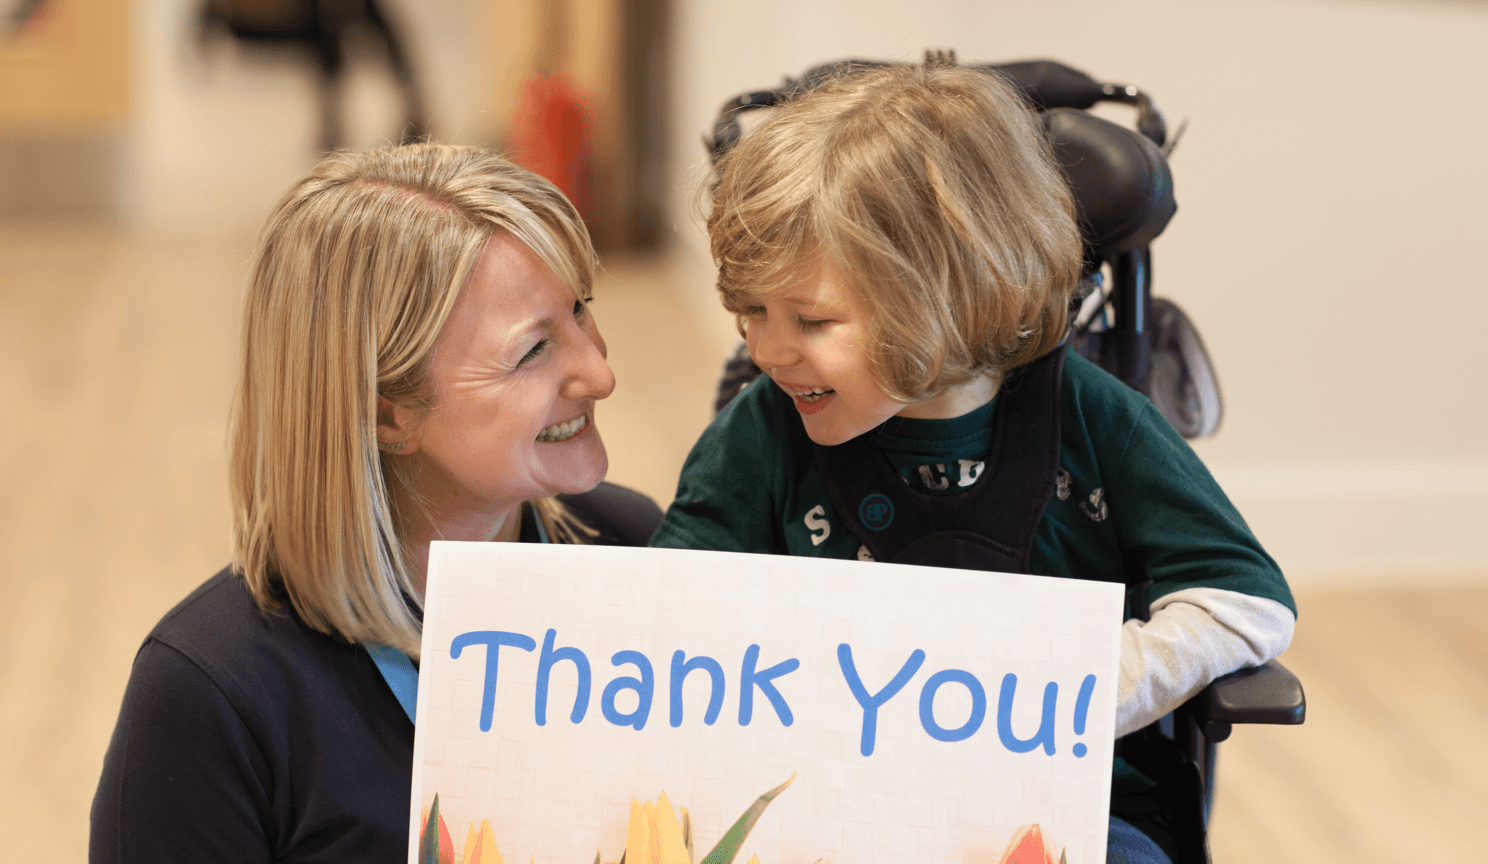 Little boy and nurses smiling and holding up 'Thank you' sign.